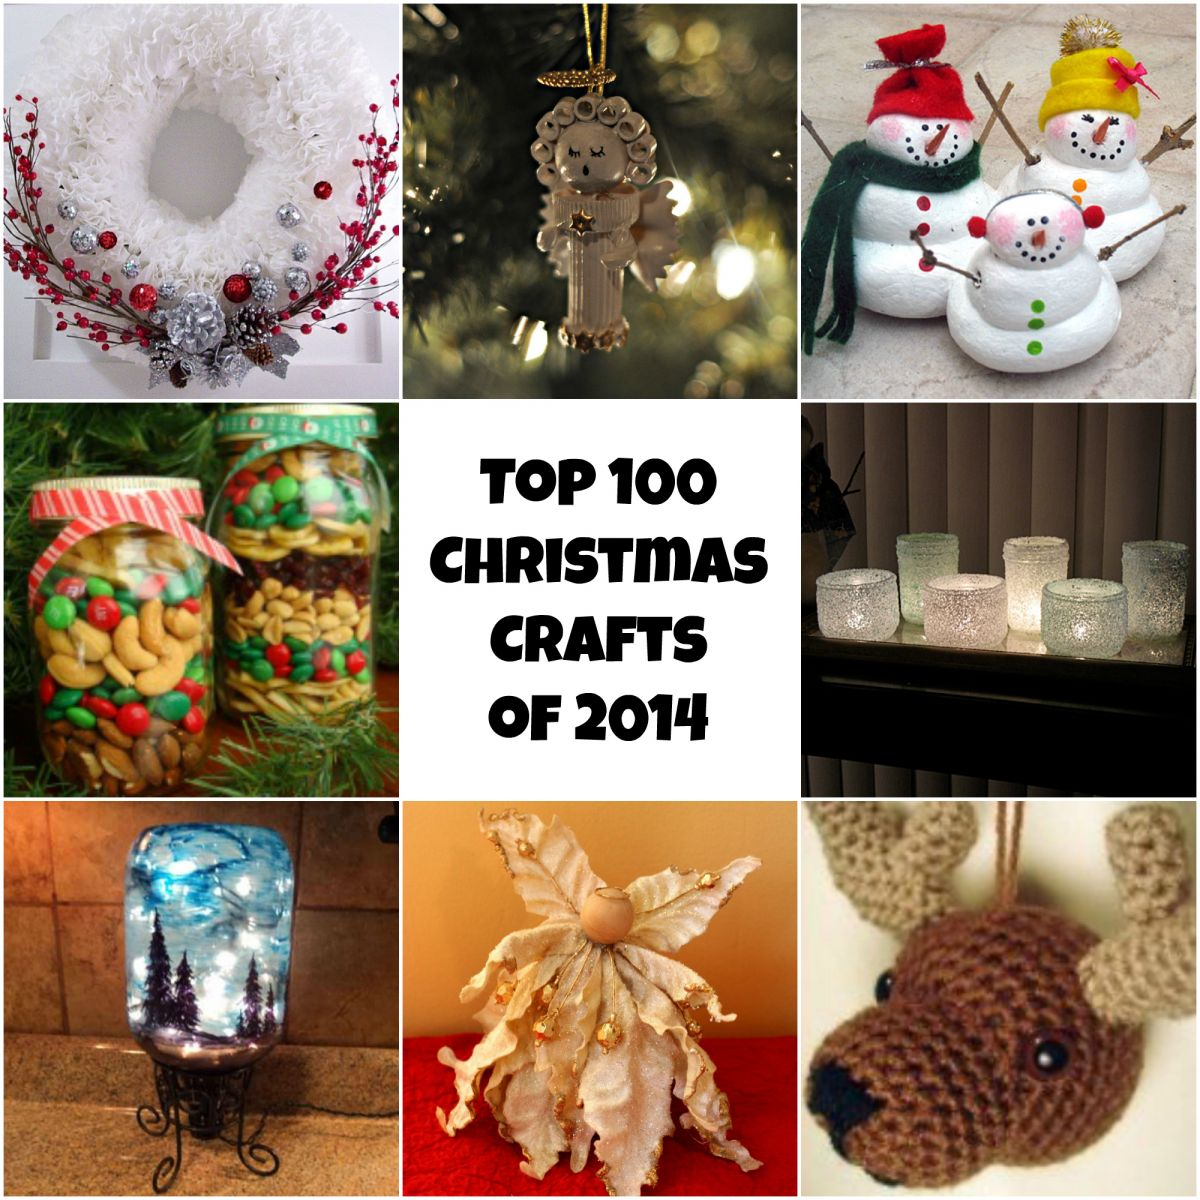 Handmade christmas decorations to sell - Top 100 Diy Christmas Crafts Of 2014 Homemade Christmas